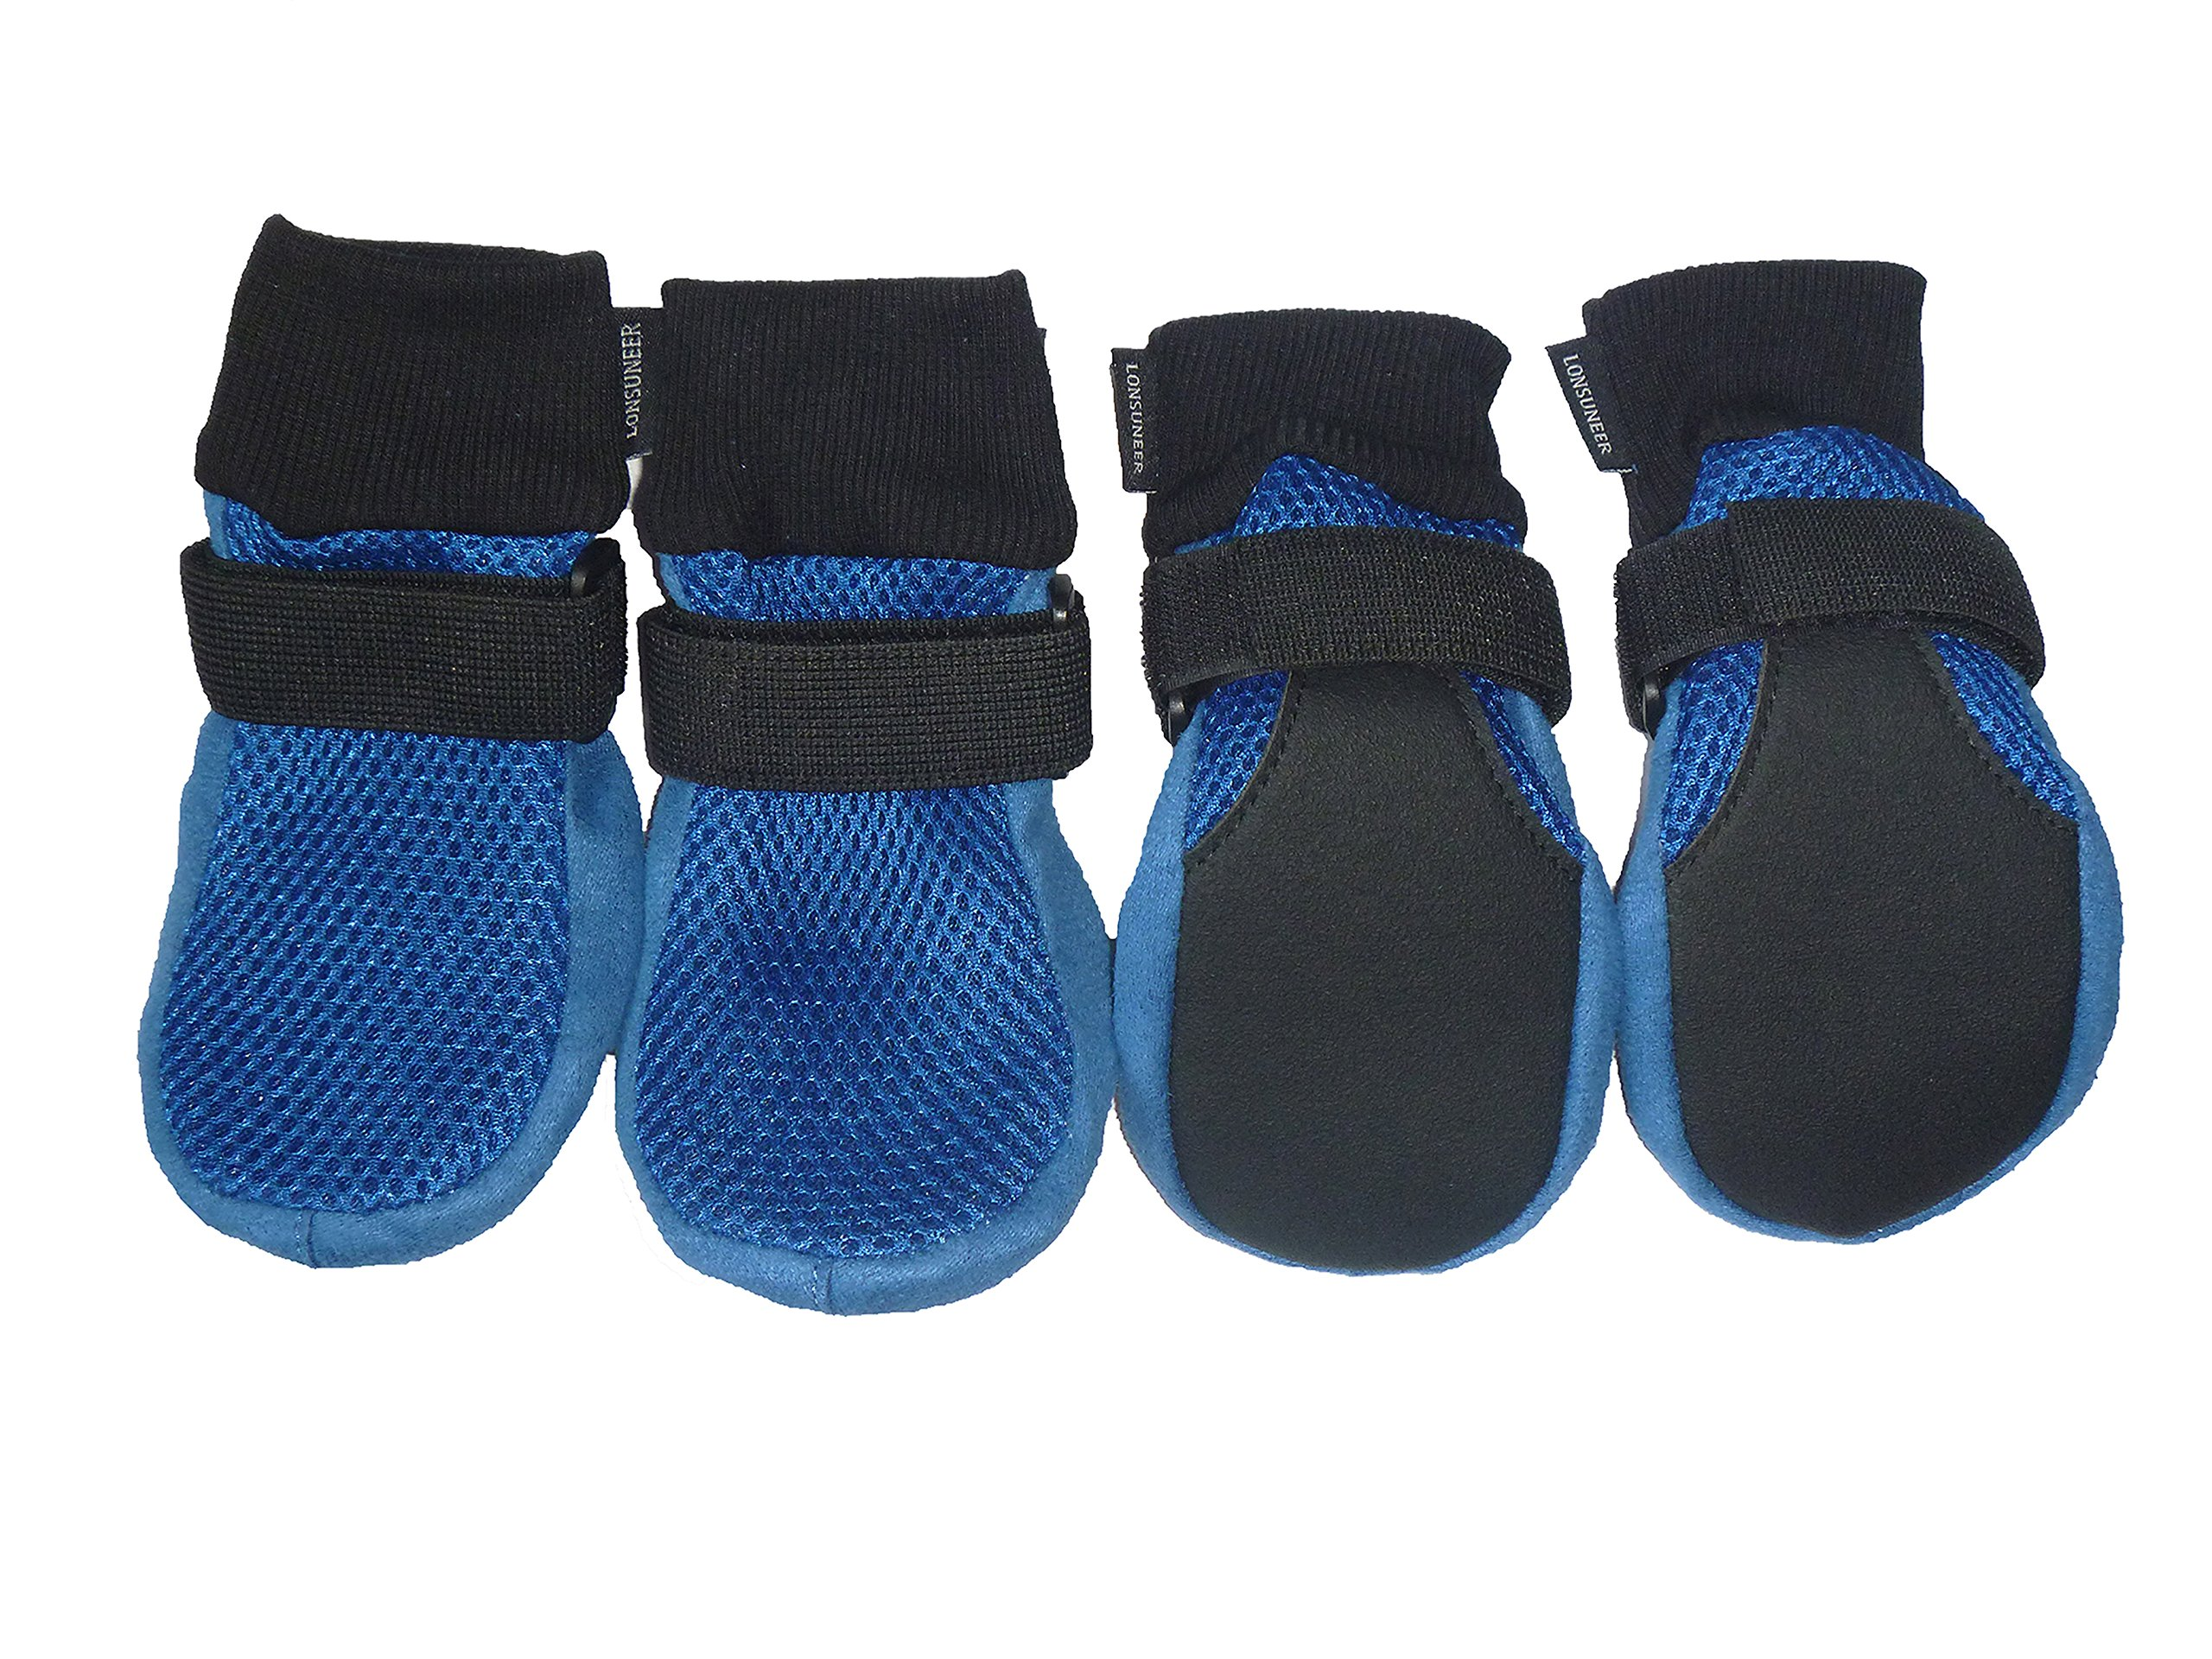 LONSUNEER Dog Boots Breathable and Protect Paws Soft Nonslip Soles Blue Color Size Large - Inner Sole Width 2.83 Inch